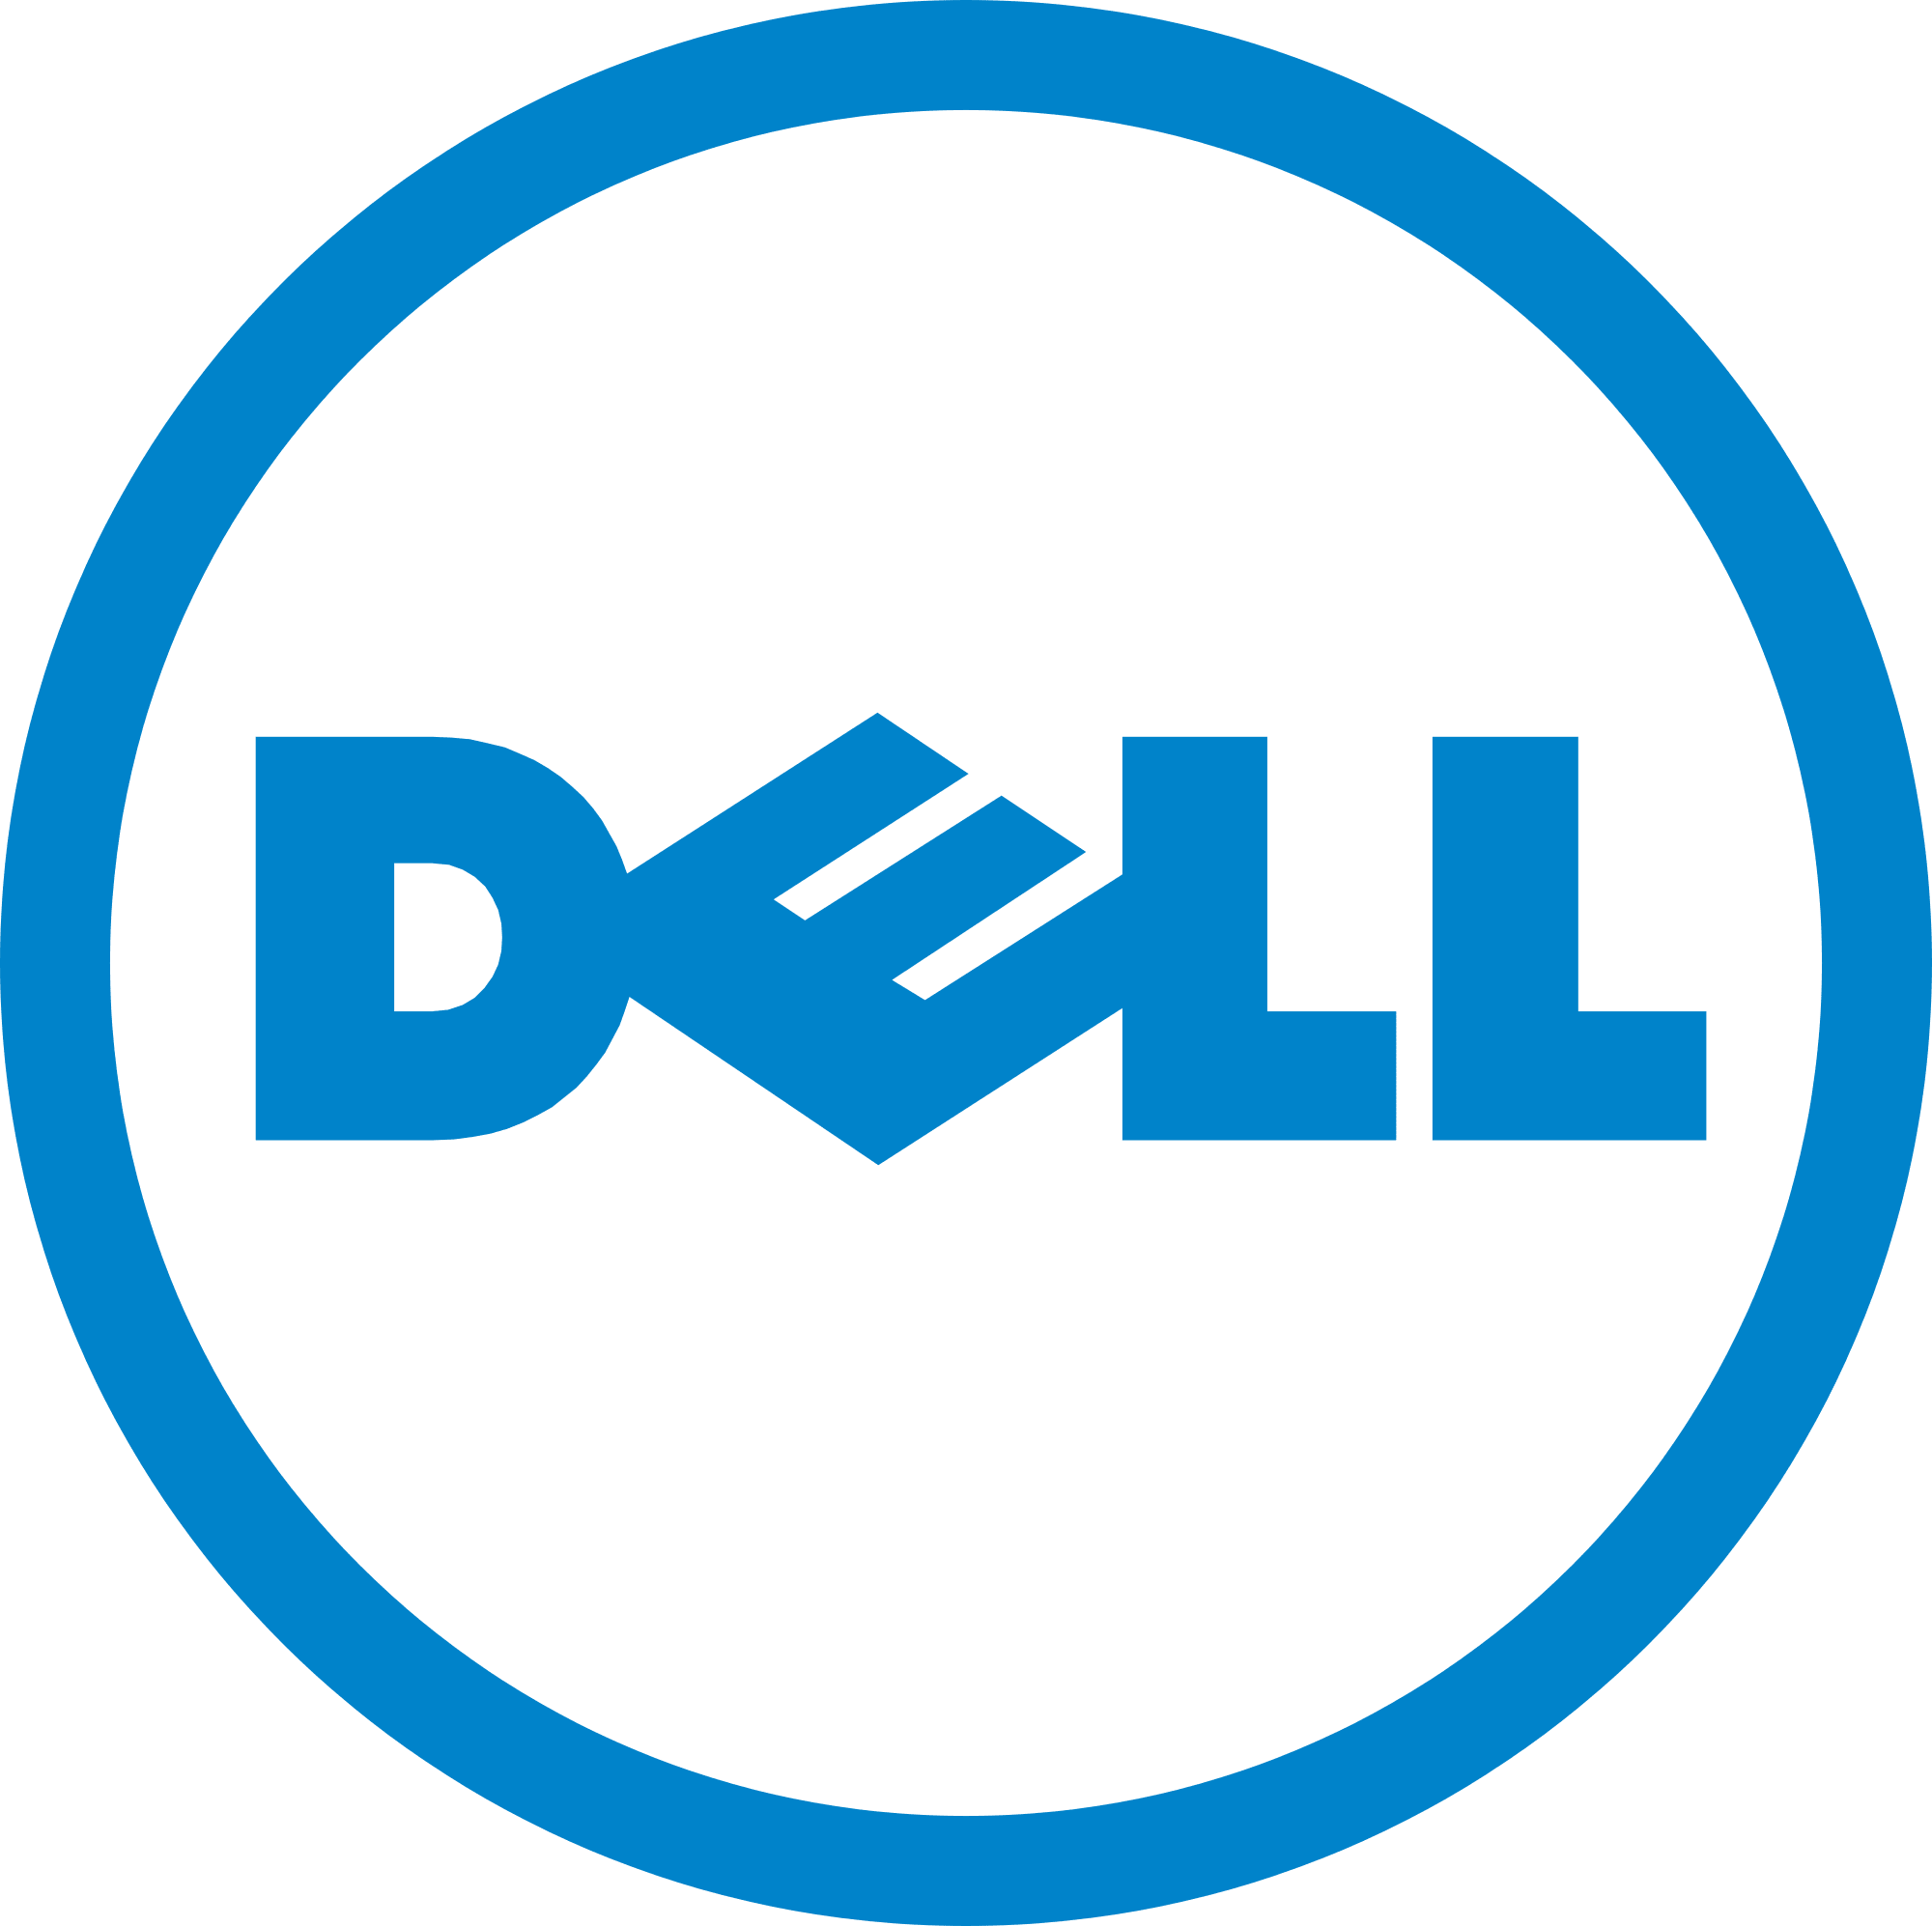 Dell Member Purchase Program: Up to 30% off + free shipping